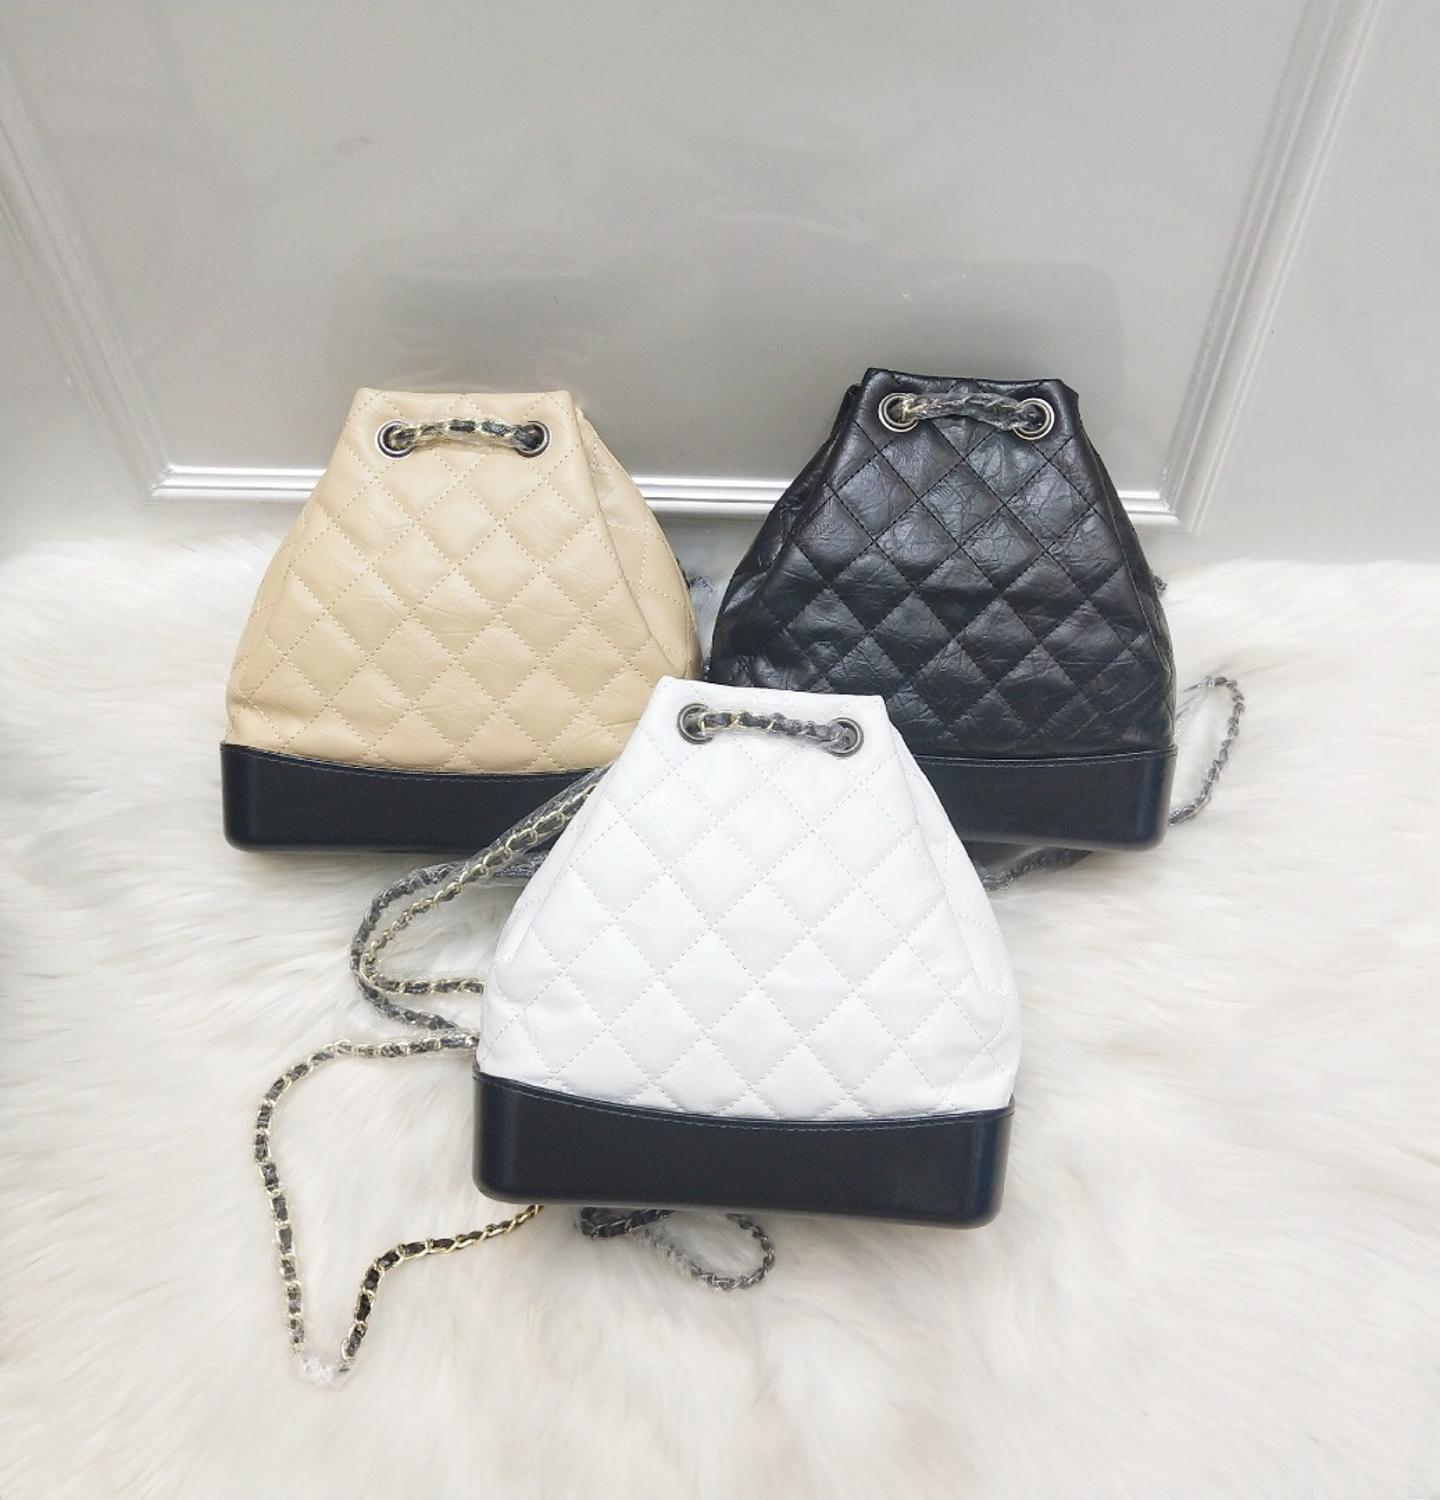 2020 new arrival women cow leather backpack fashion famaous brandb mini shoulder bag top quality real leather bag for lady